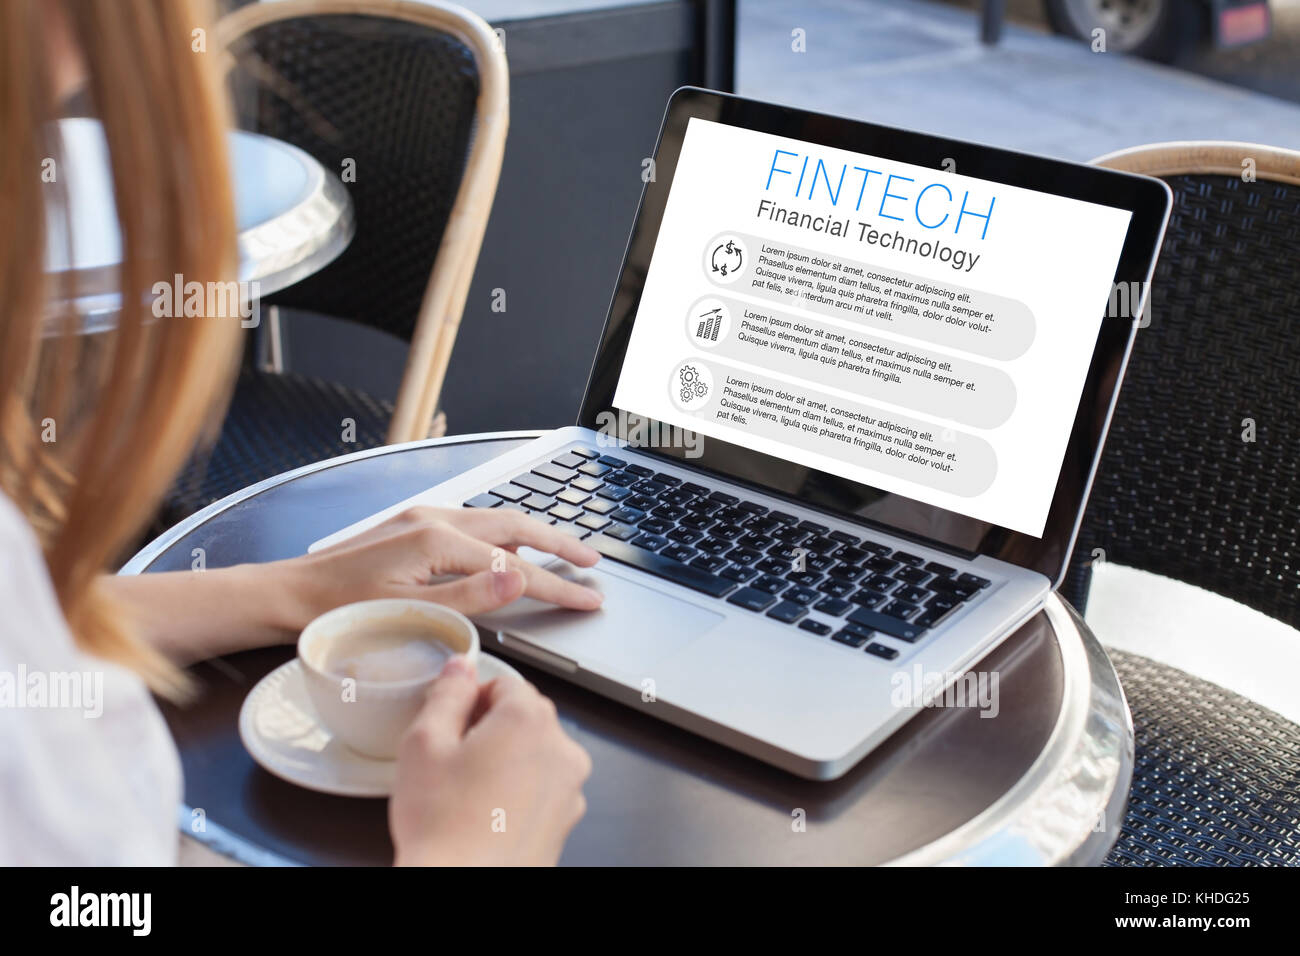 fintech concept, woman reading about financial technology on computer screen - Stock Image